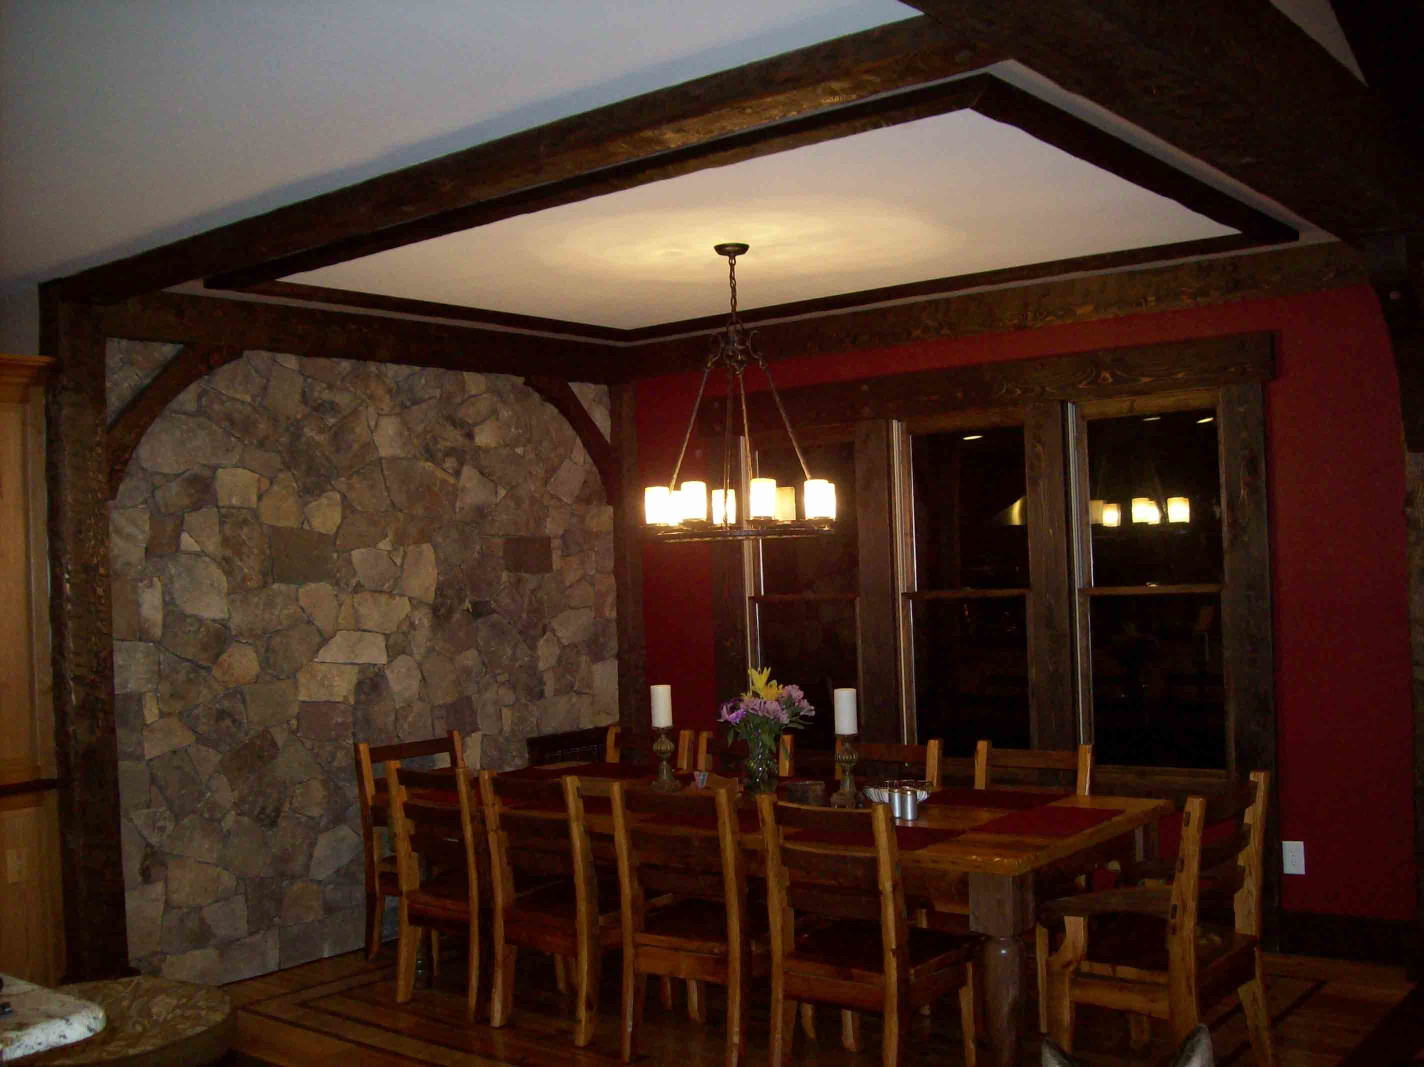 The wood beams, wood posts, wood braces ,and window trim are a custom design for this dining area.